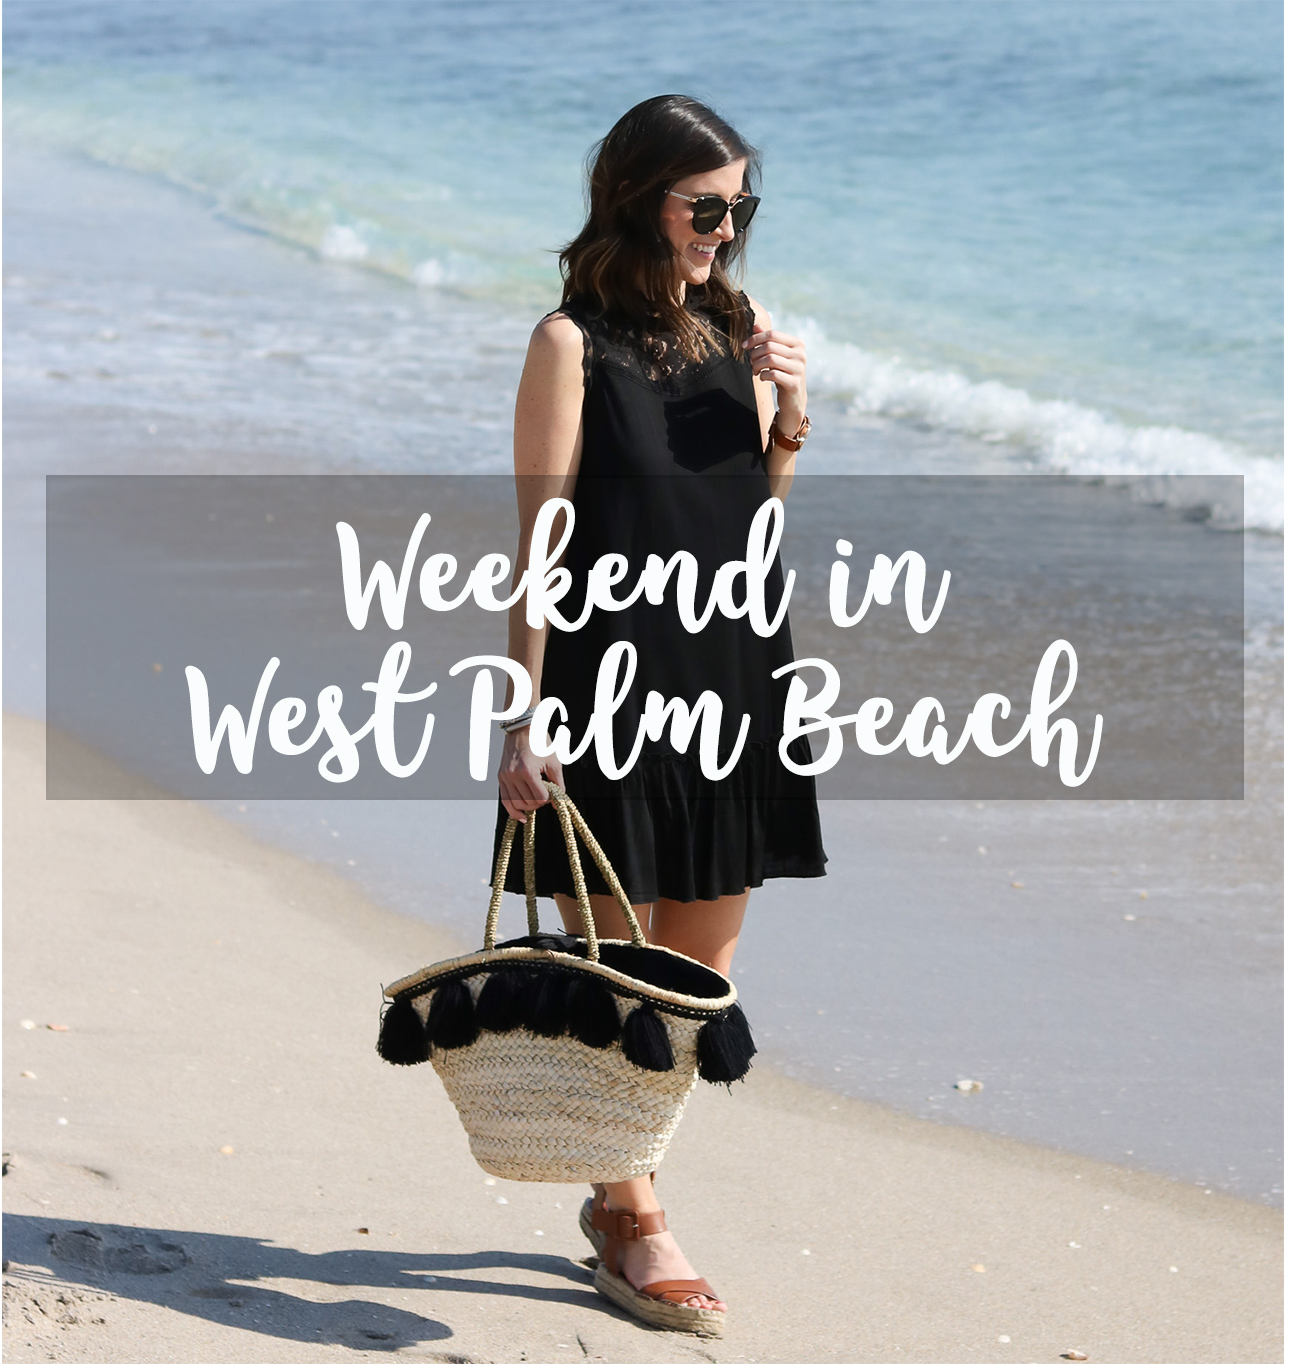 Weekend In West Palm Beach - Cobalt Chronicles - @cobaltchronicle